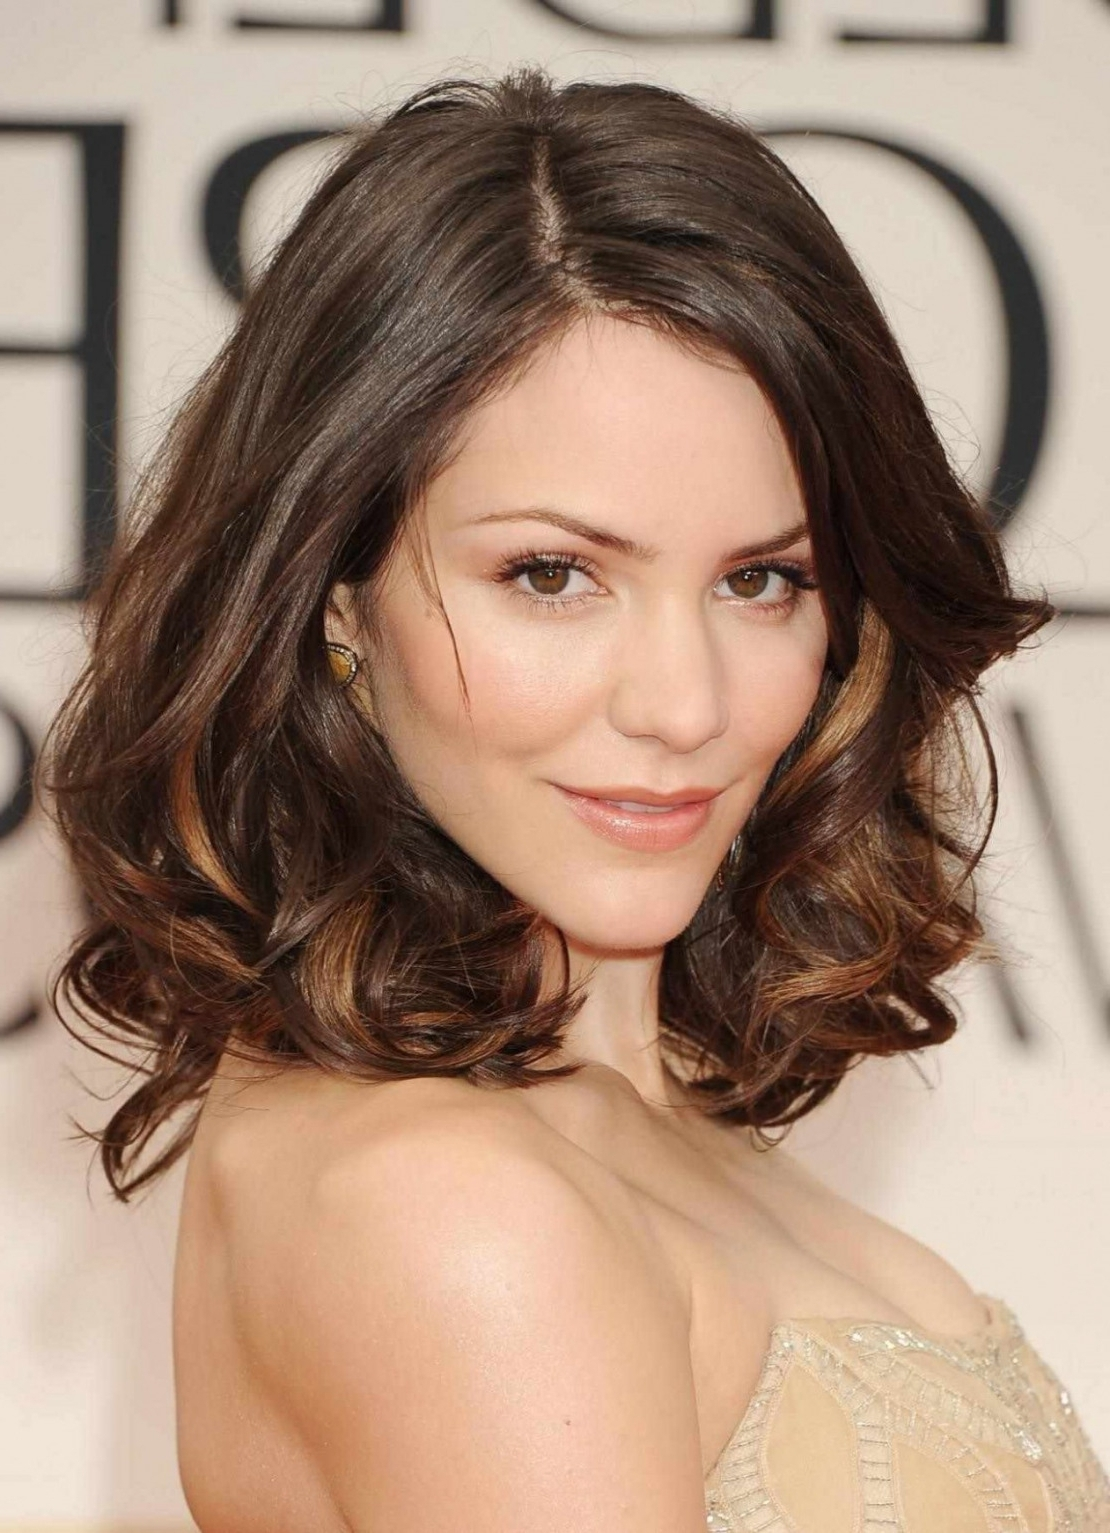 Wedding Hairstyles For Medium Length Hair Round Face Archives – A Throughout Most Recent Wedding Hairstyles For Round Face With Medium Length Hair (View 12 of 15)